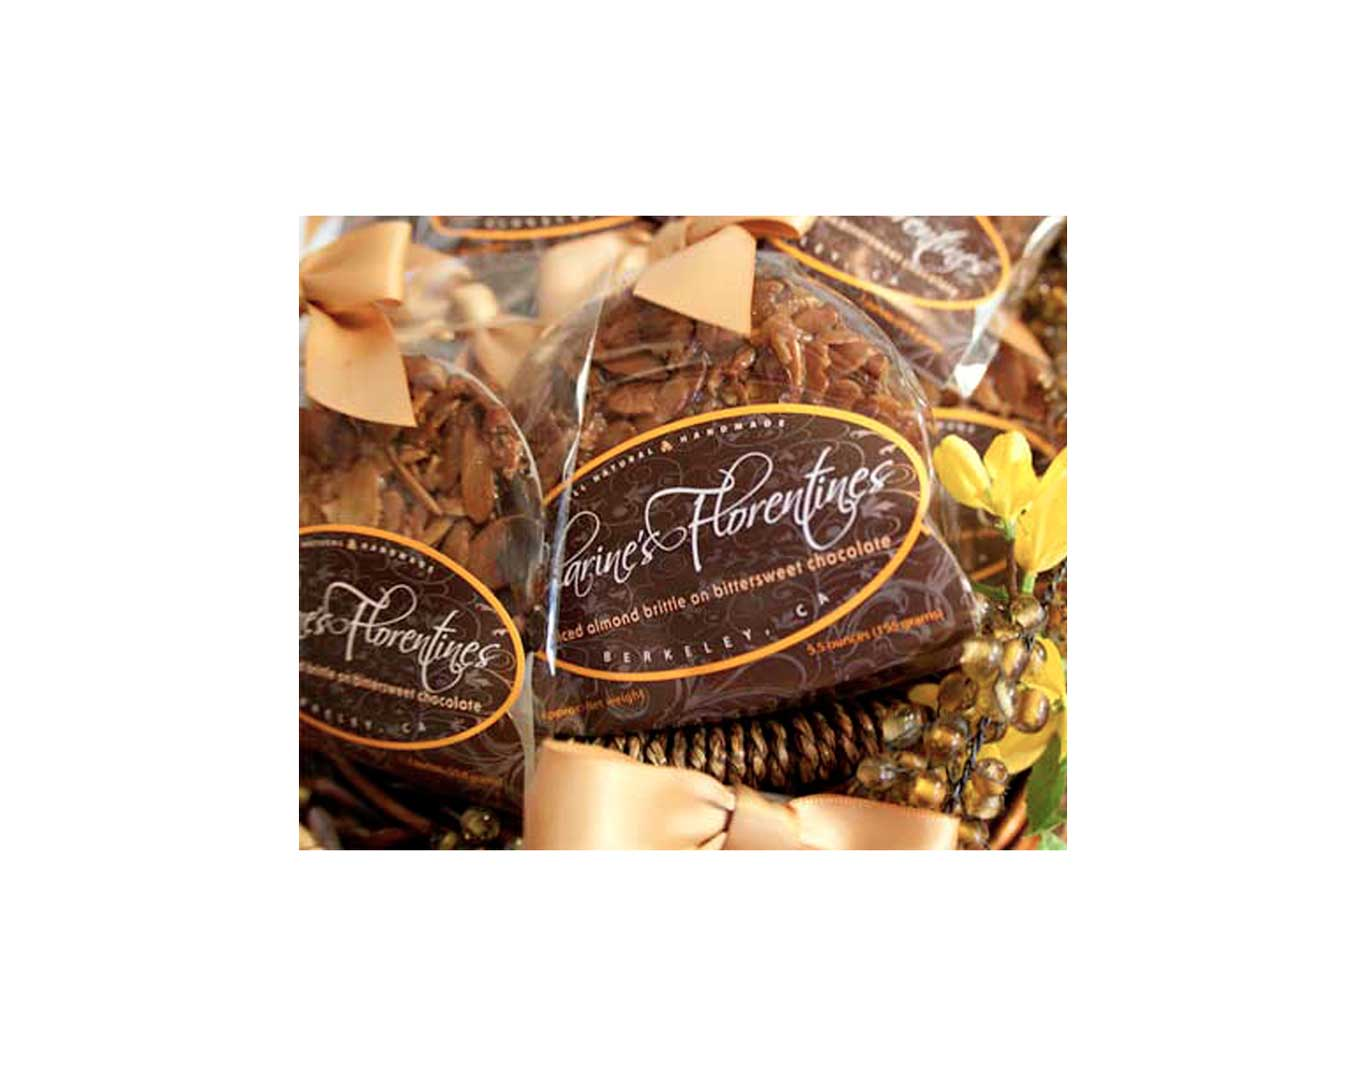 Packaging- Clarine's Florentines